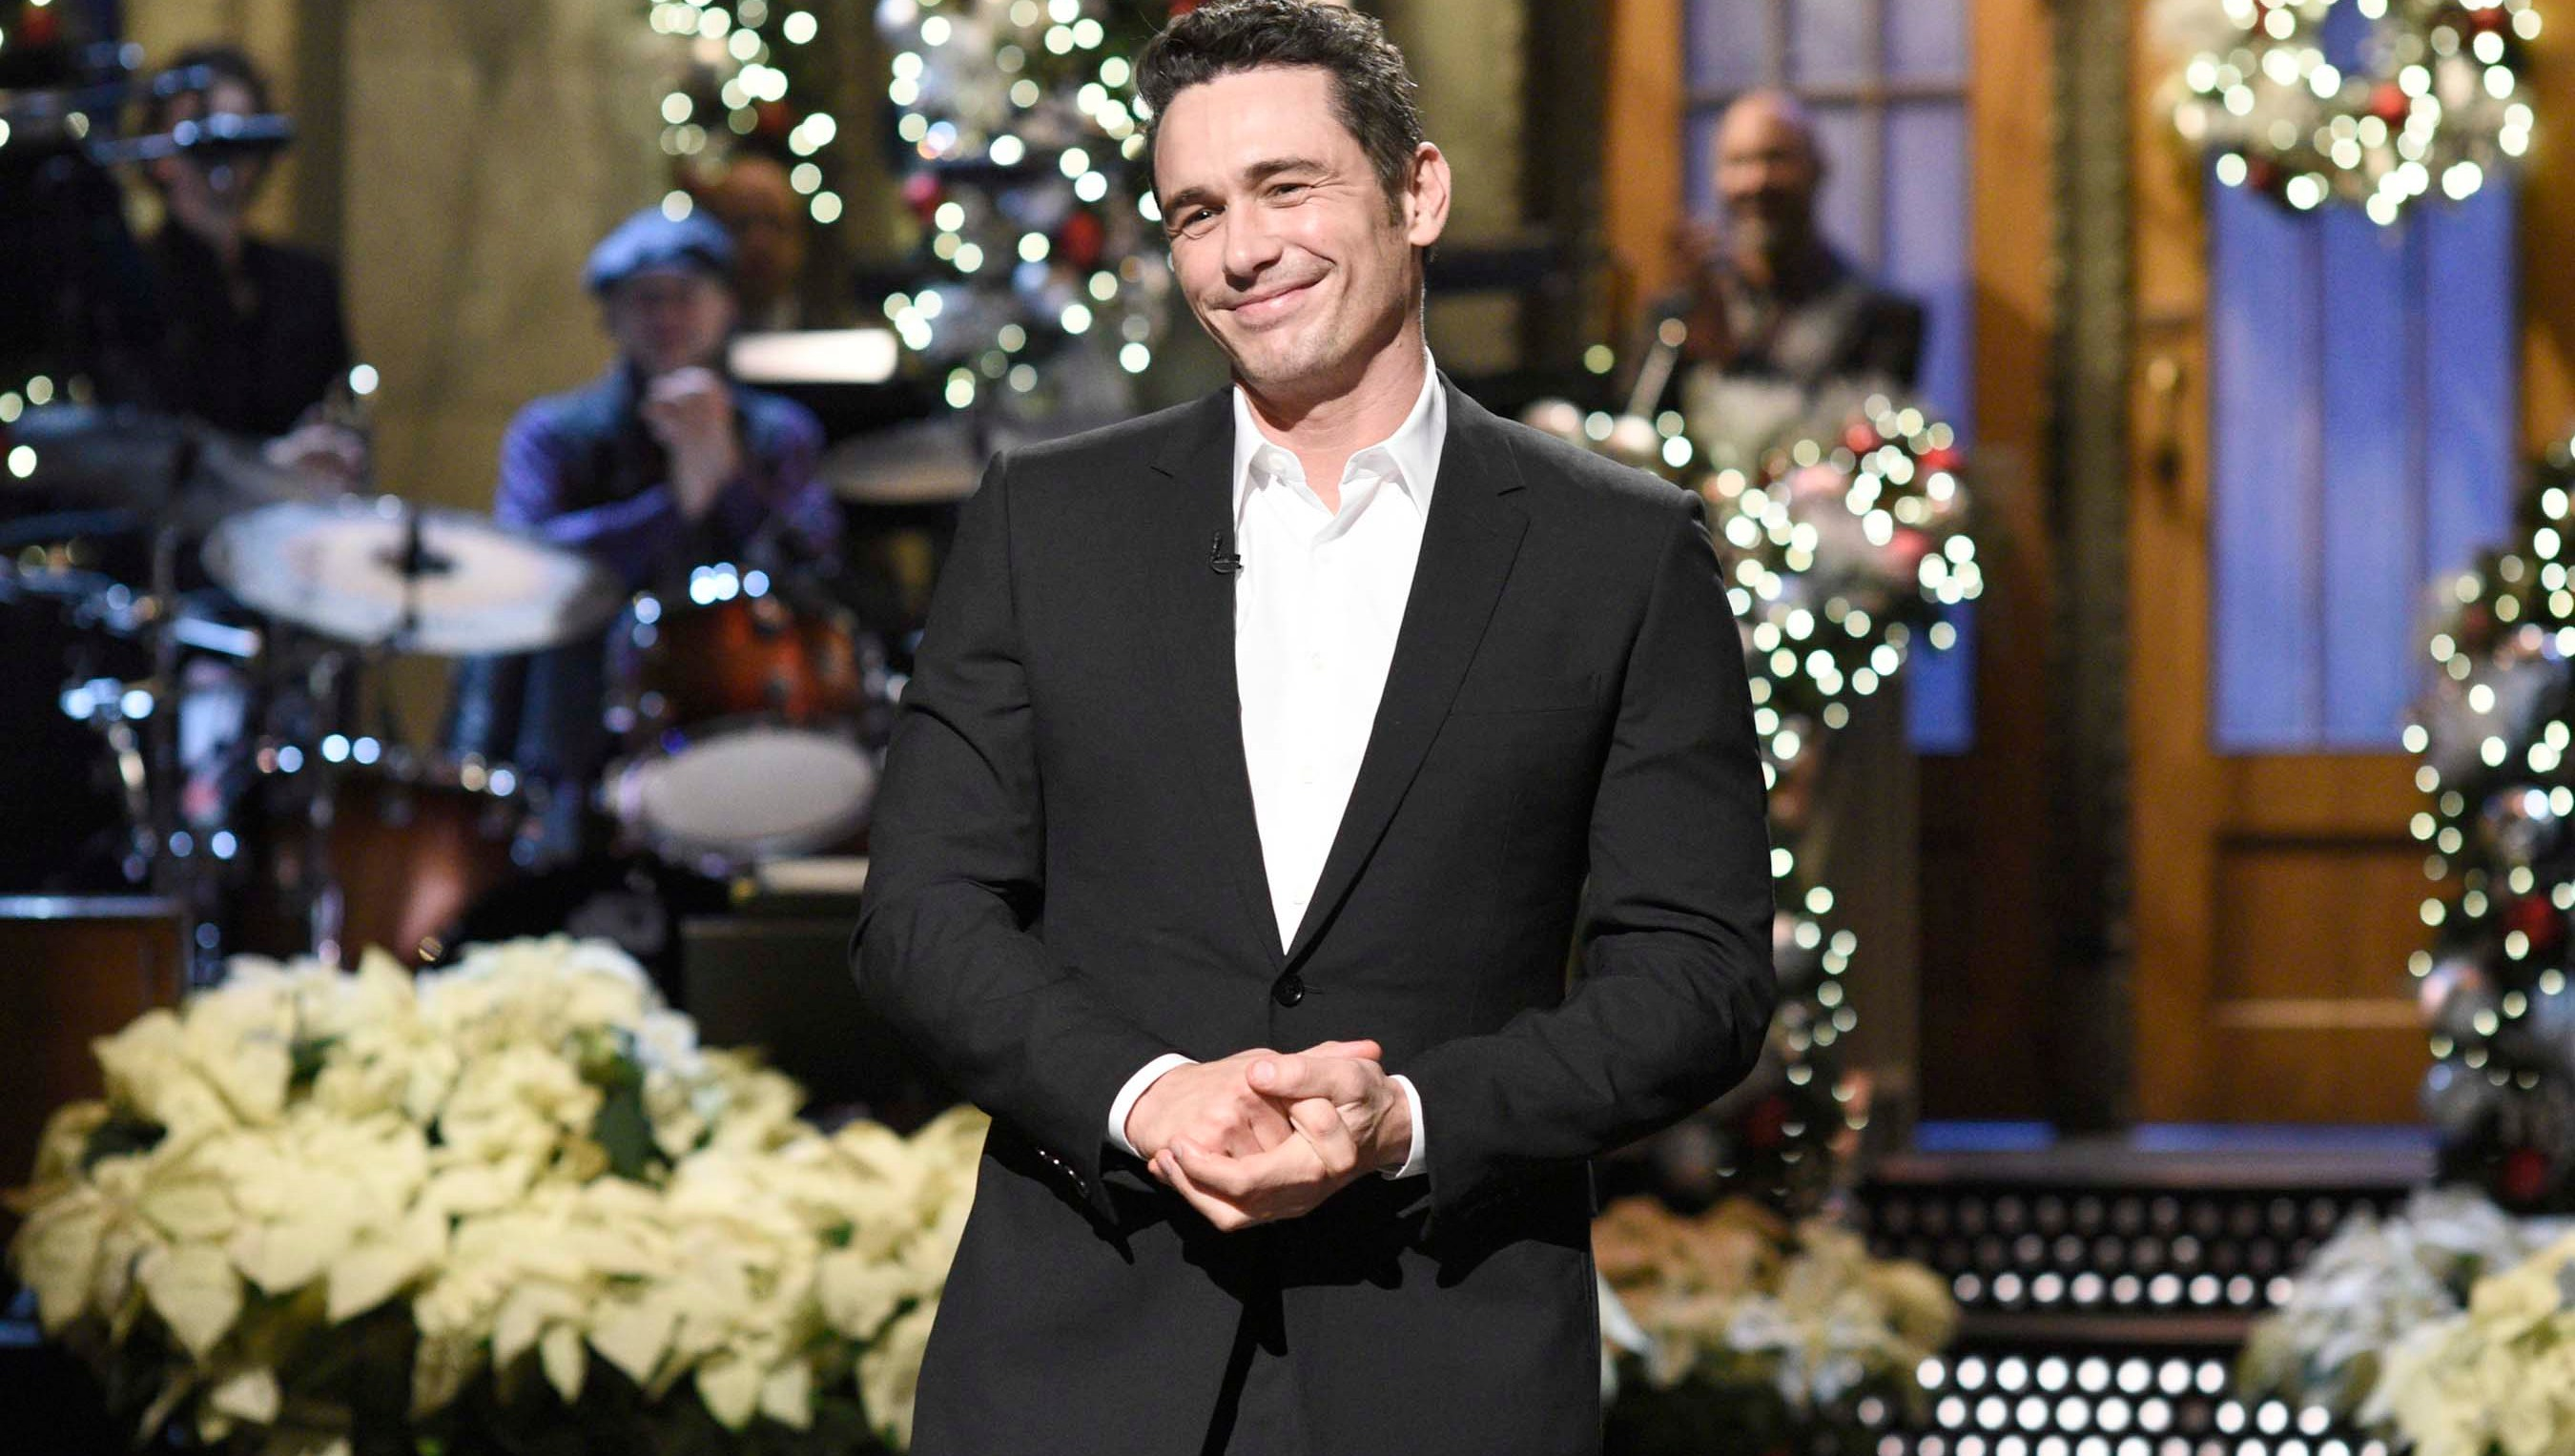 James Franco hosts SNL December 9, 2017